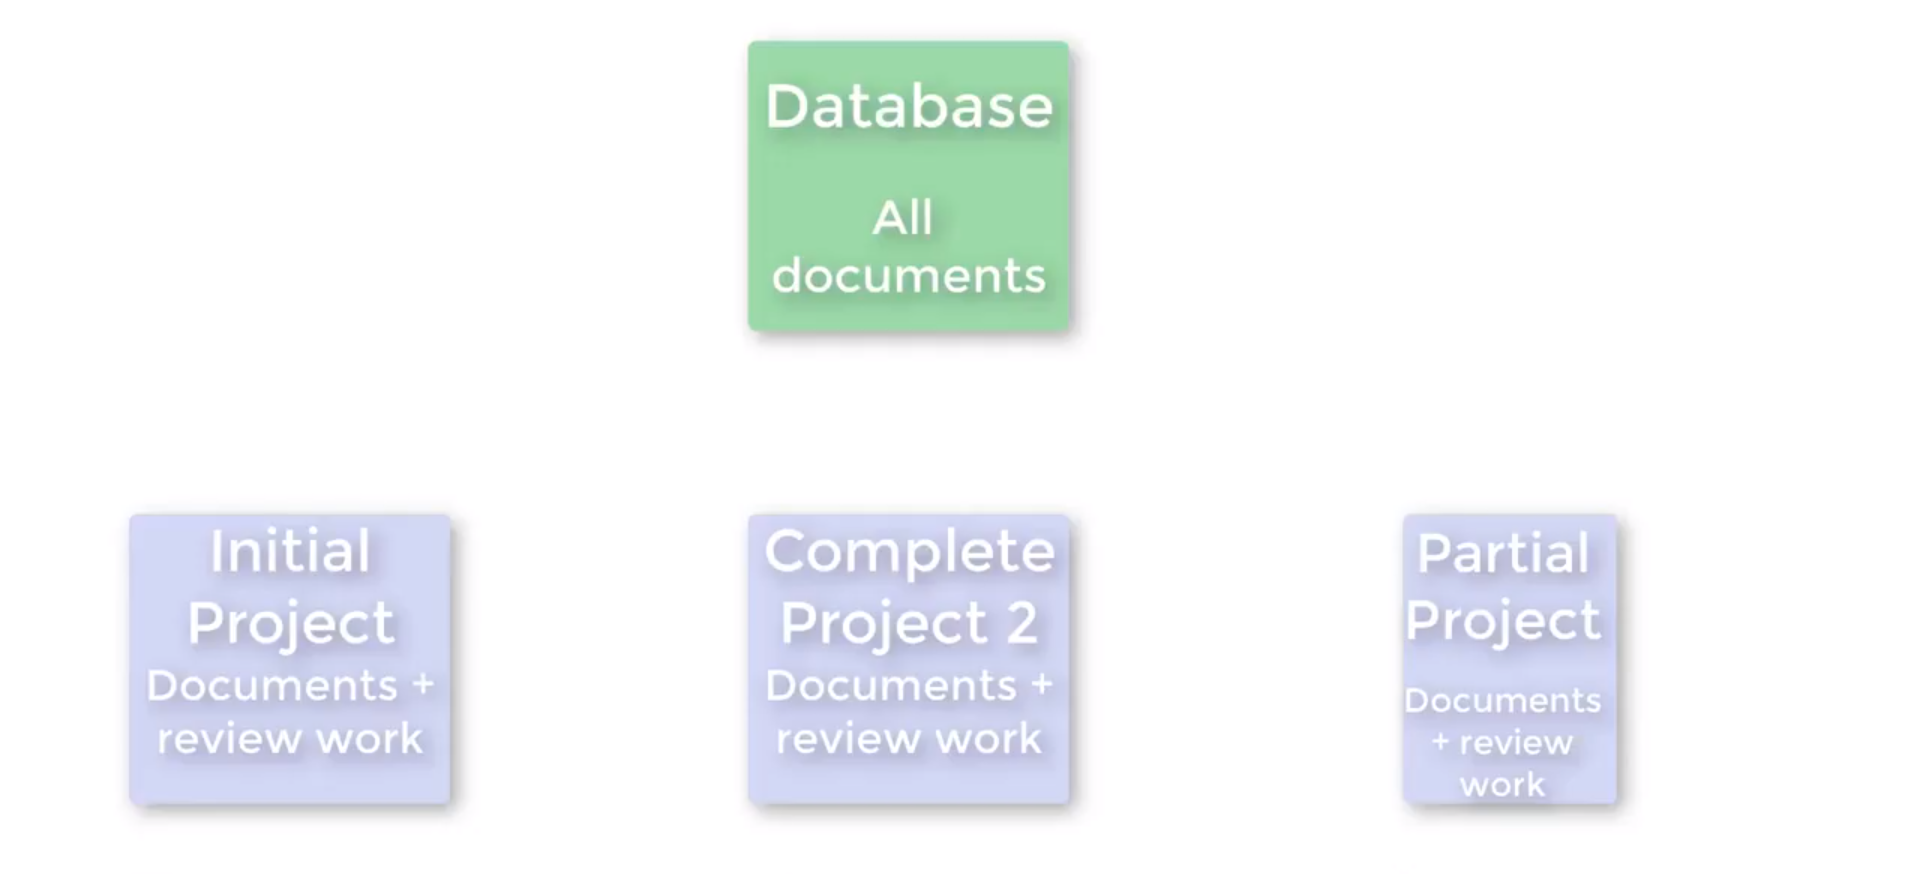 database_projects_diagram.png